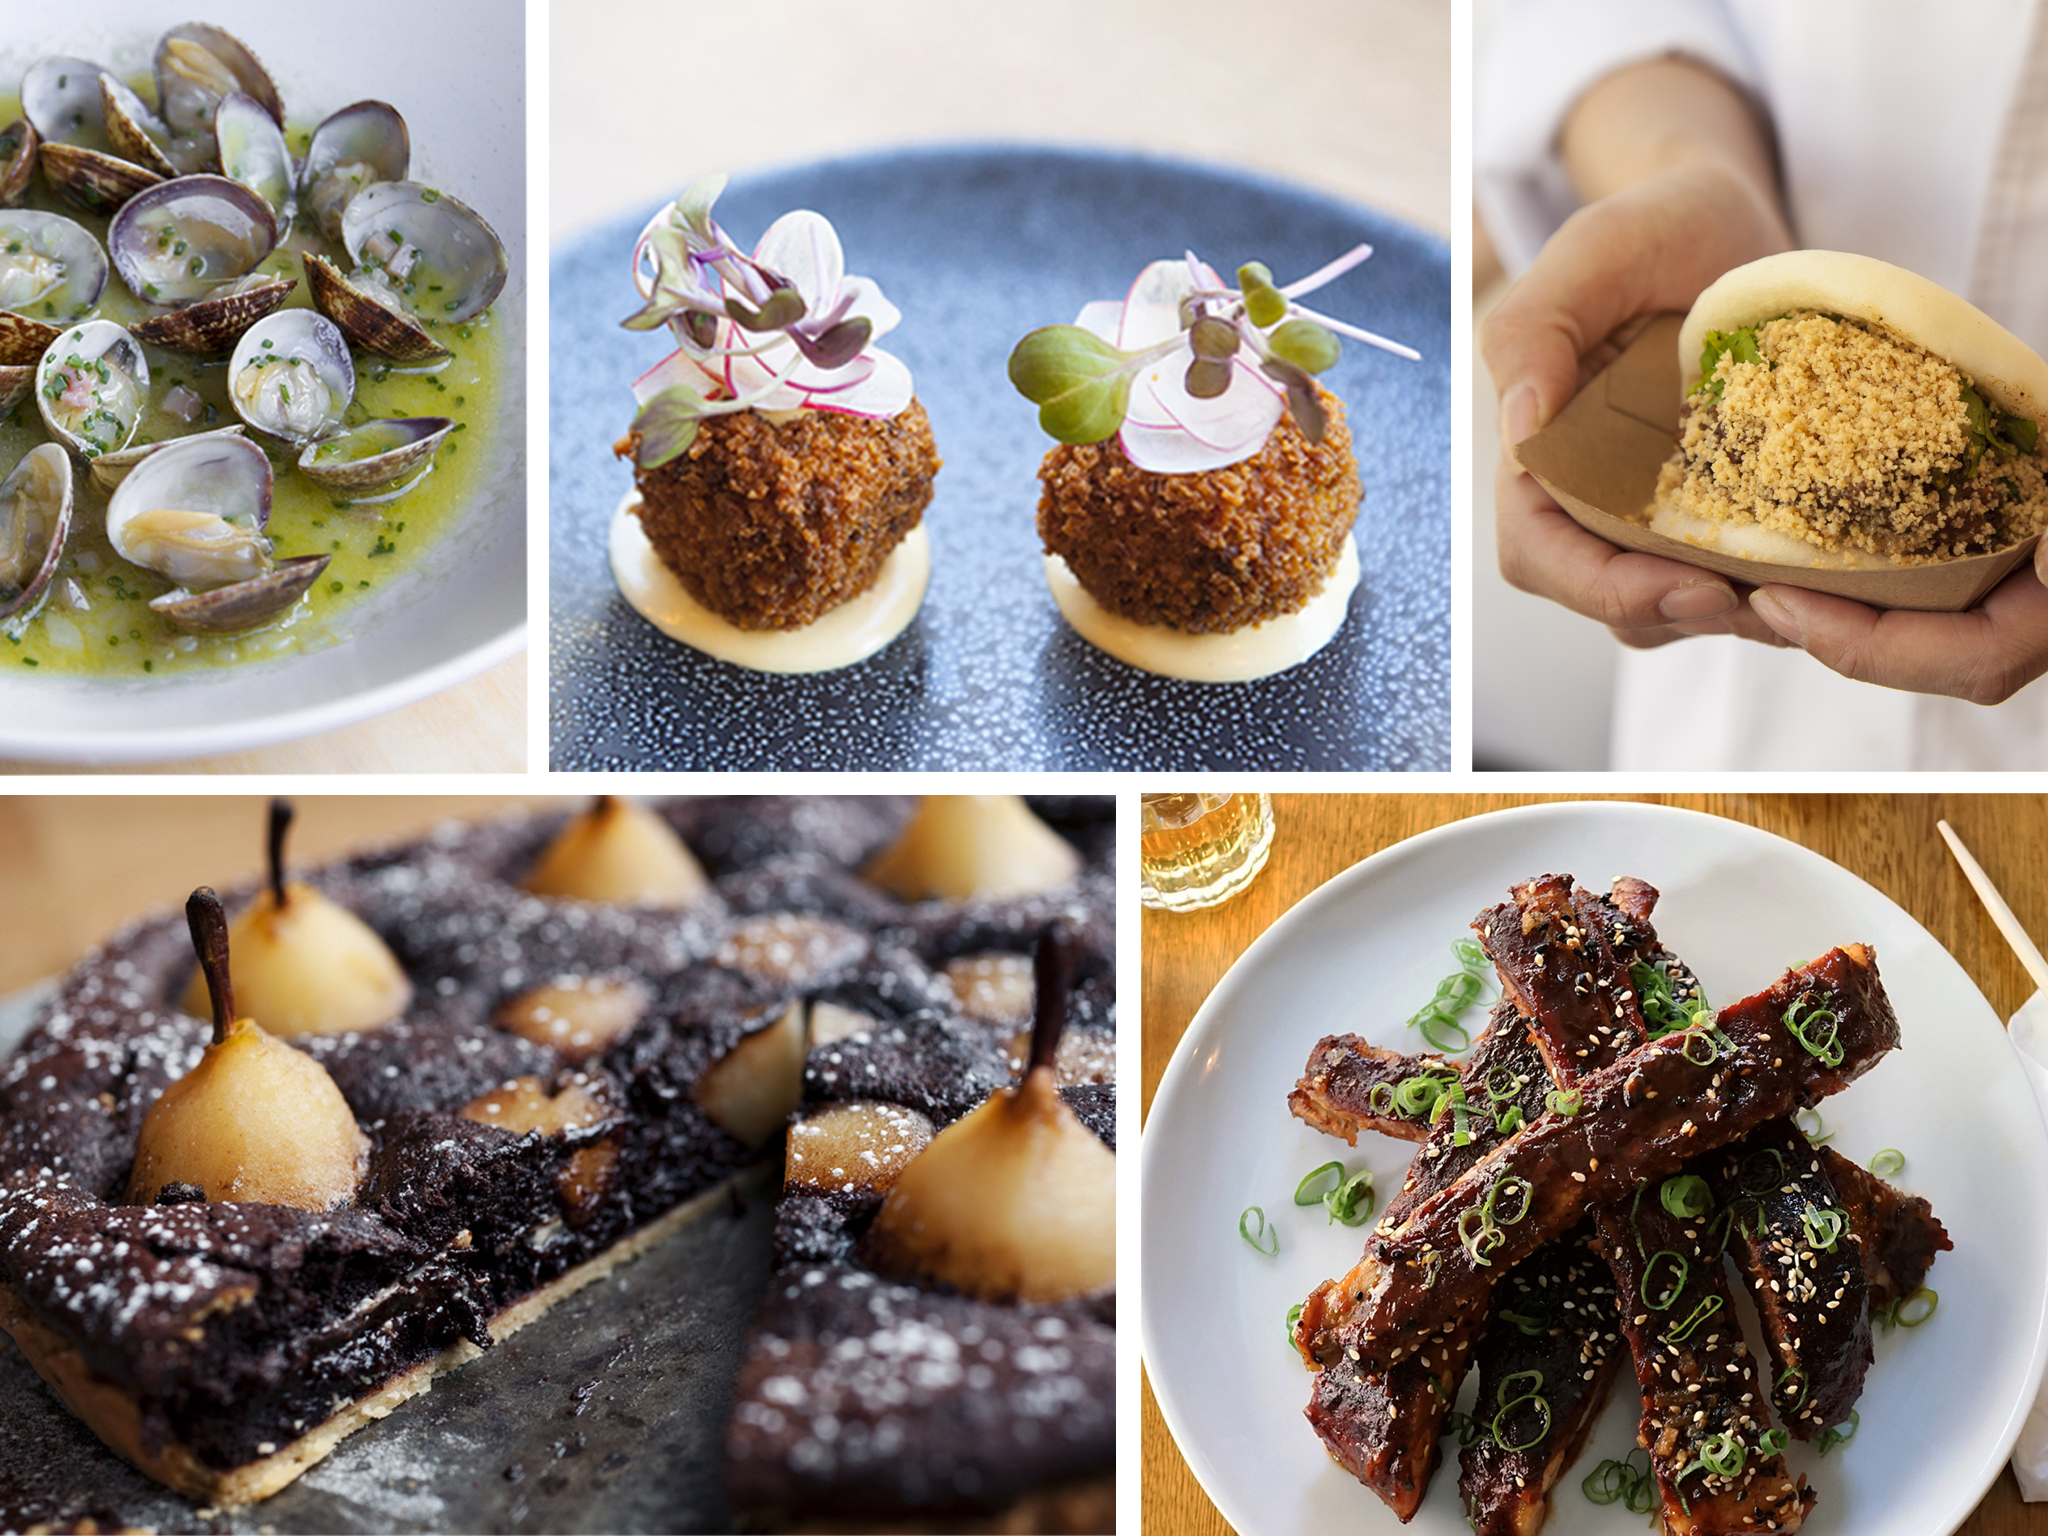 The 100 best restaurants in London